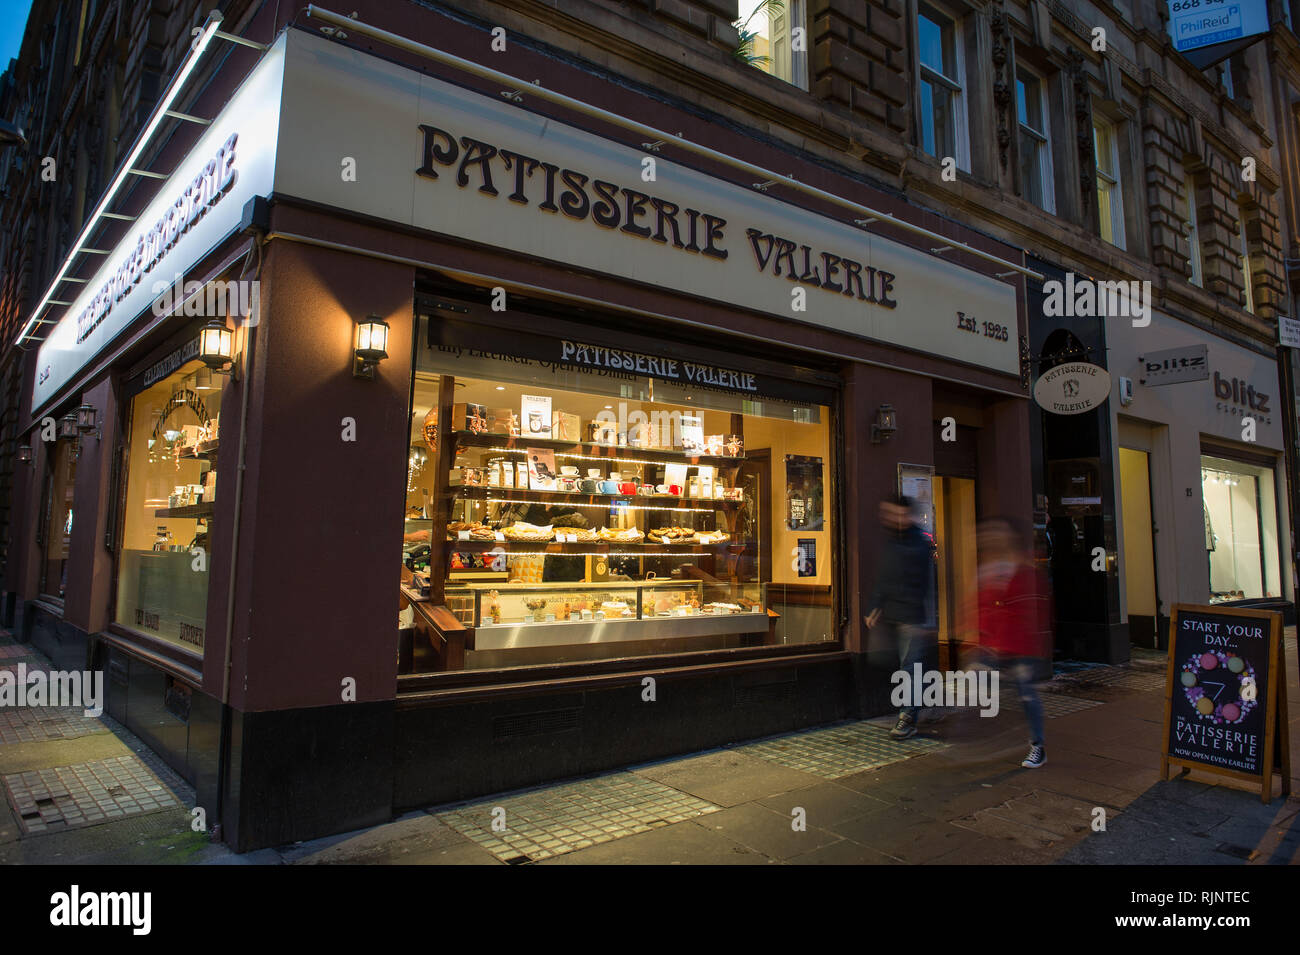 Glasgow, UK. 25 January 2019. Patisserie Valerie is a chain of cafés that operates in the United Kingdom. The chain specialises in hand-made cakes, an - Stock Image